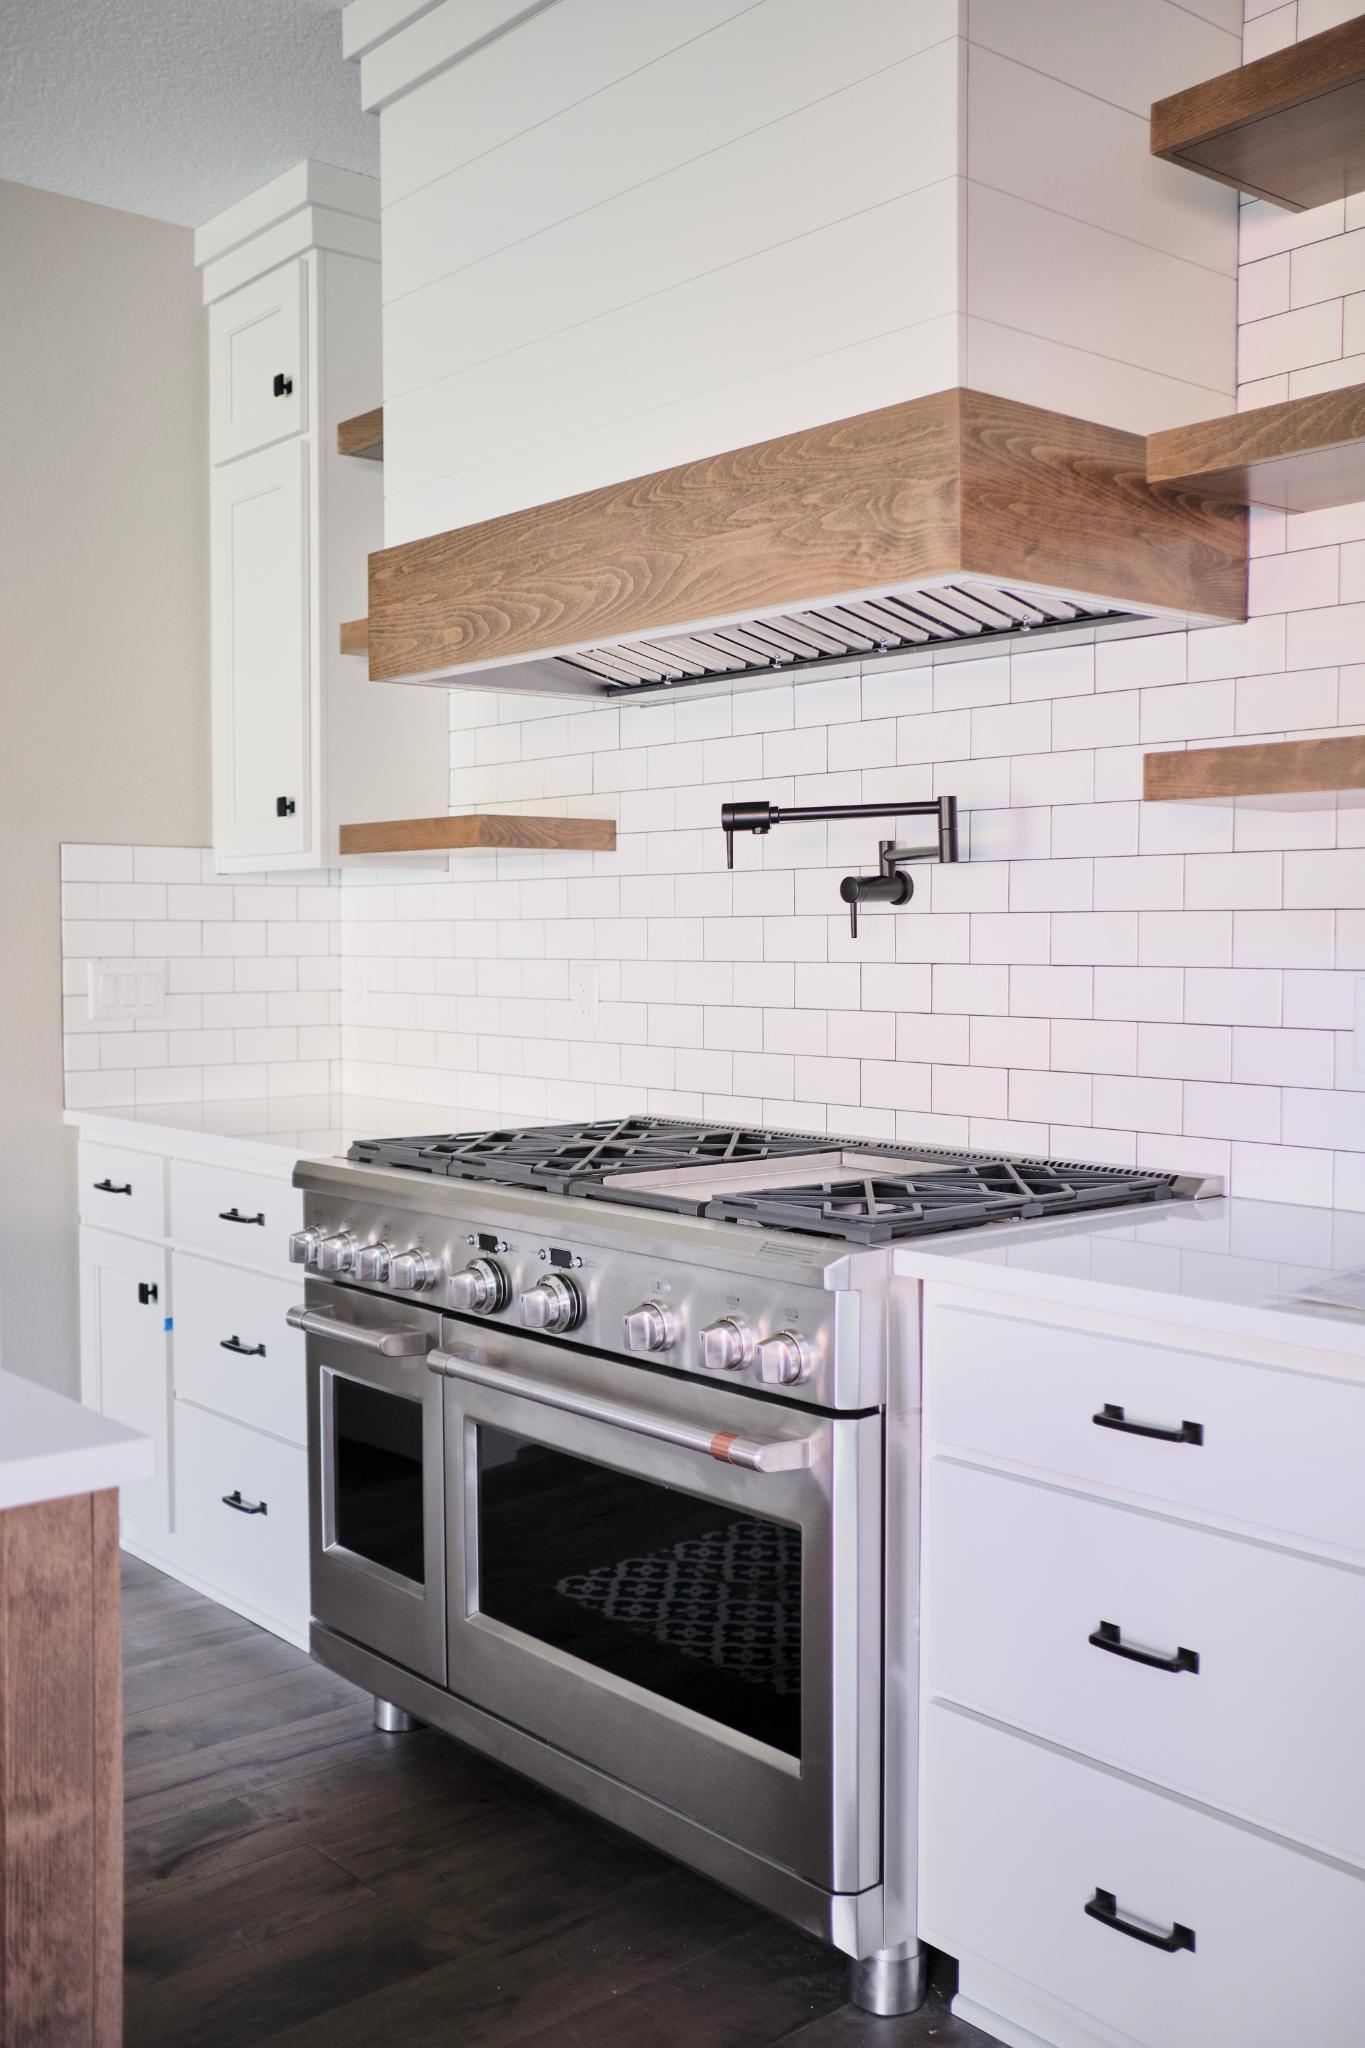 Kitchen featured in the Bainbridge By New Tradition Homes in Richland, WA